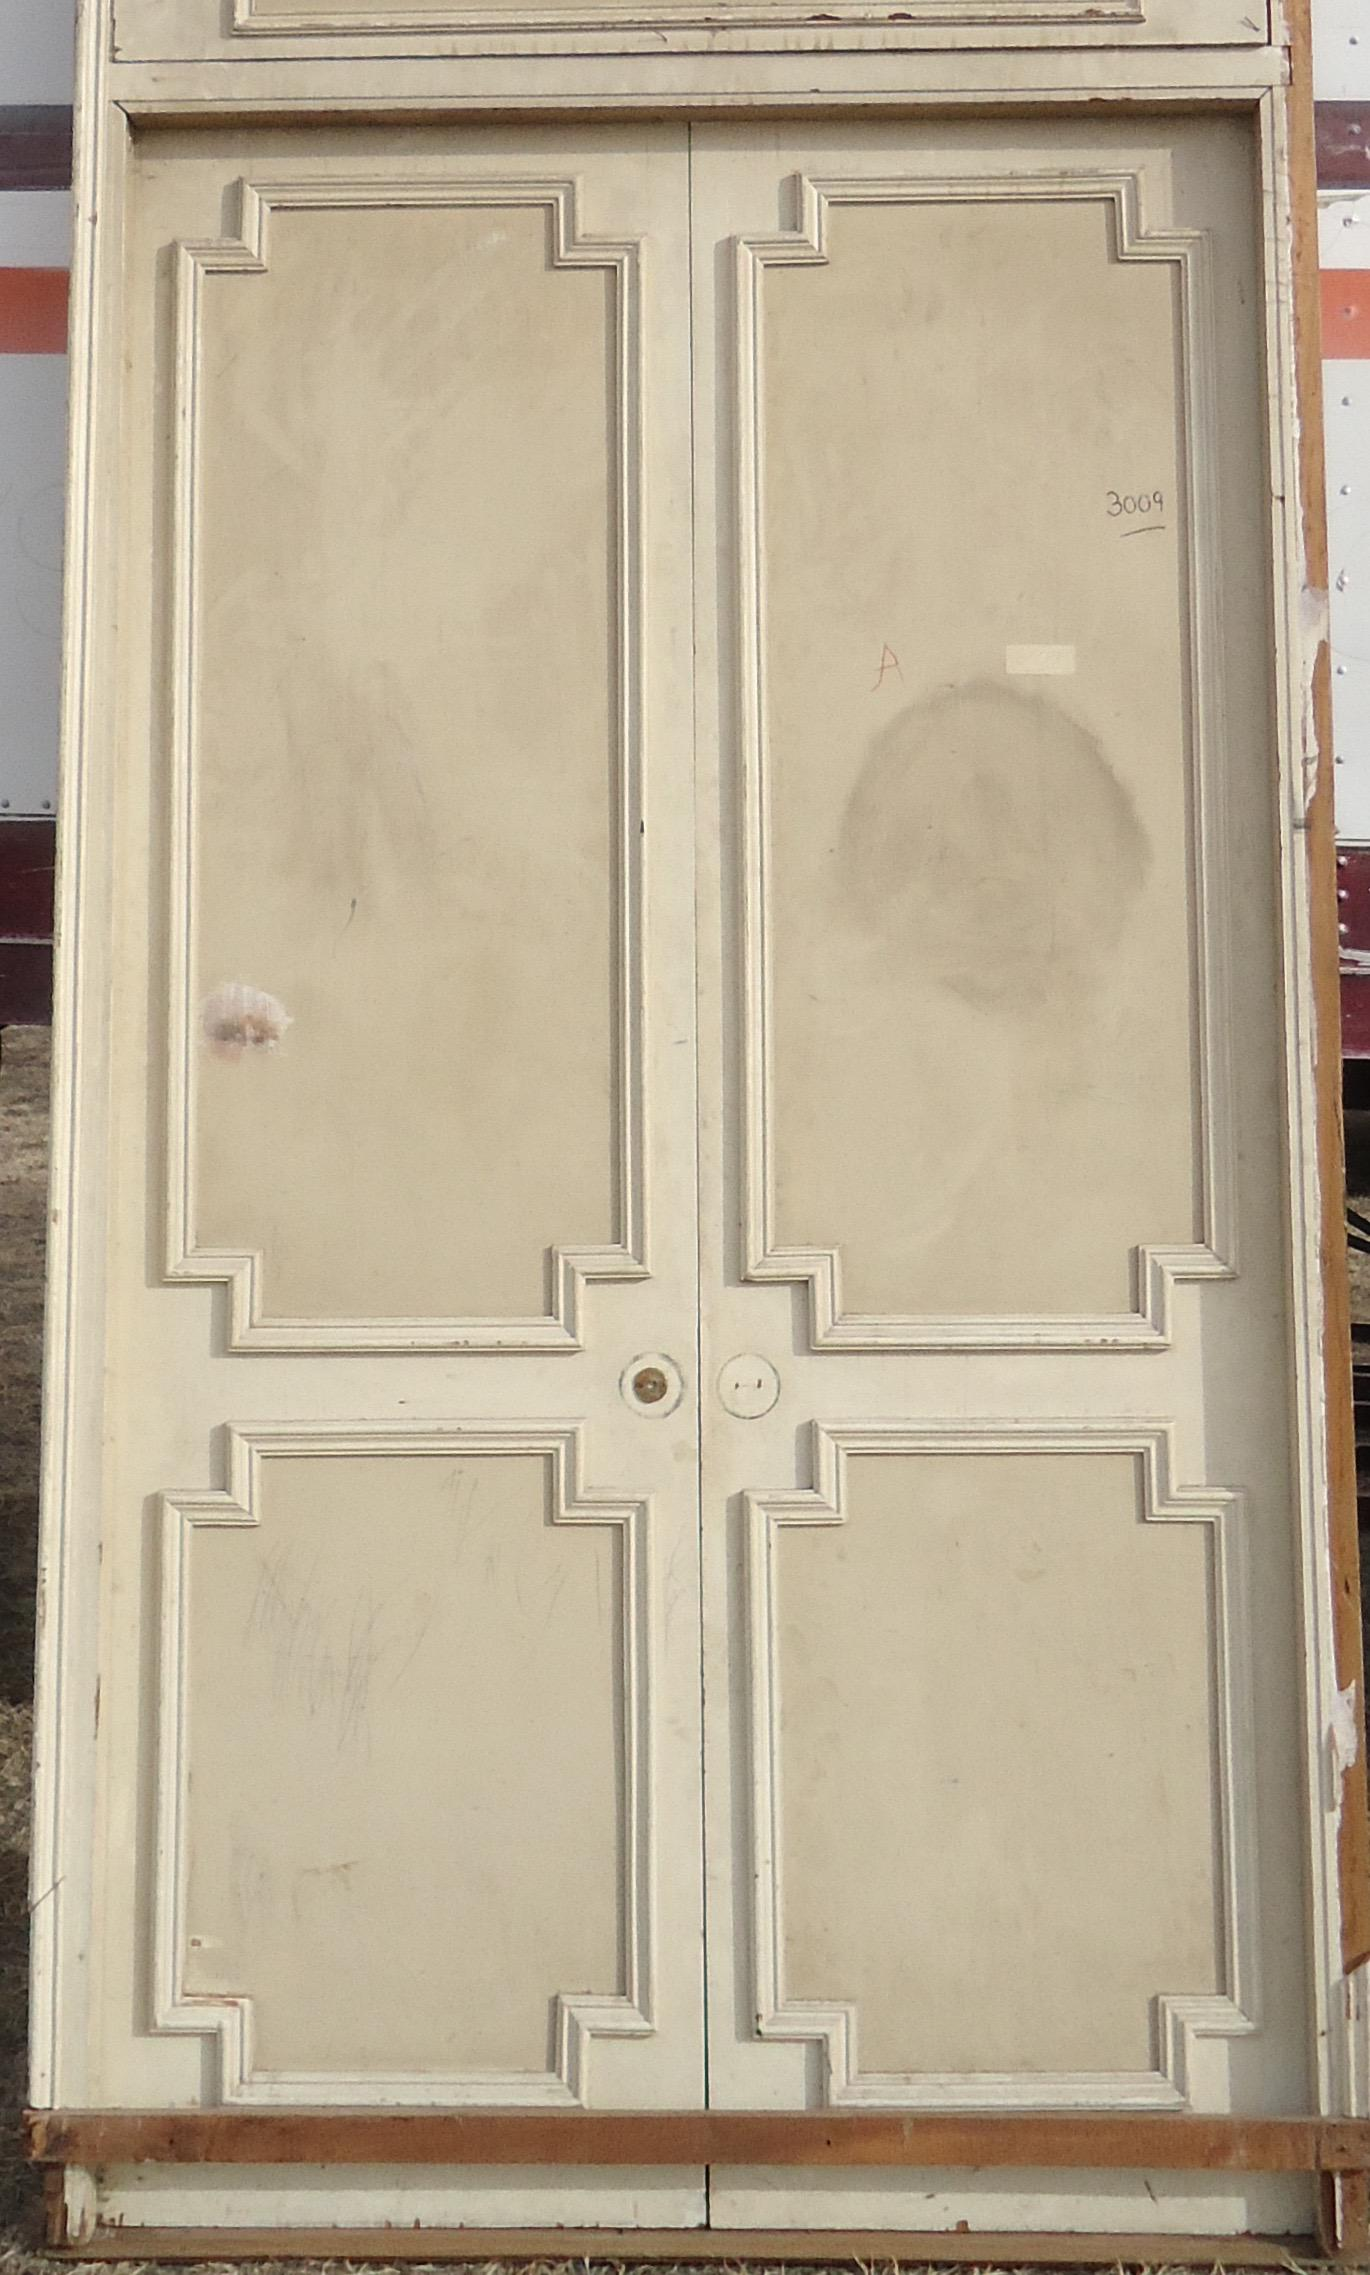 Antique White Geometric Design u0026 Solid Header Transom Doors - A Pair - Image 3 of  sc 1 st  Chairish & Antique White Geometric Design u0026 Solid Header Transom Doors - A Pair ...